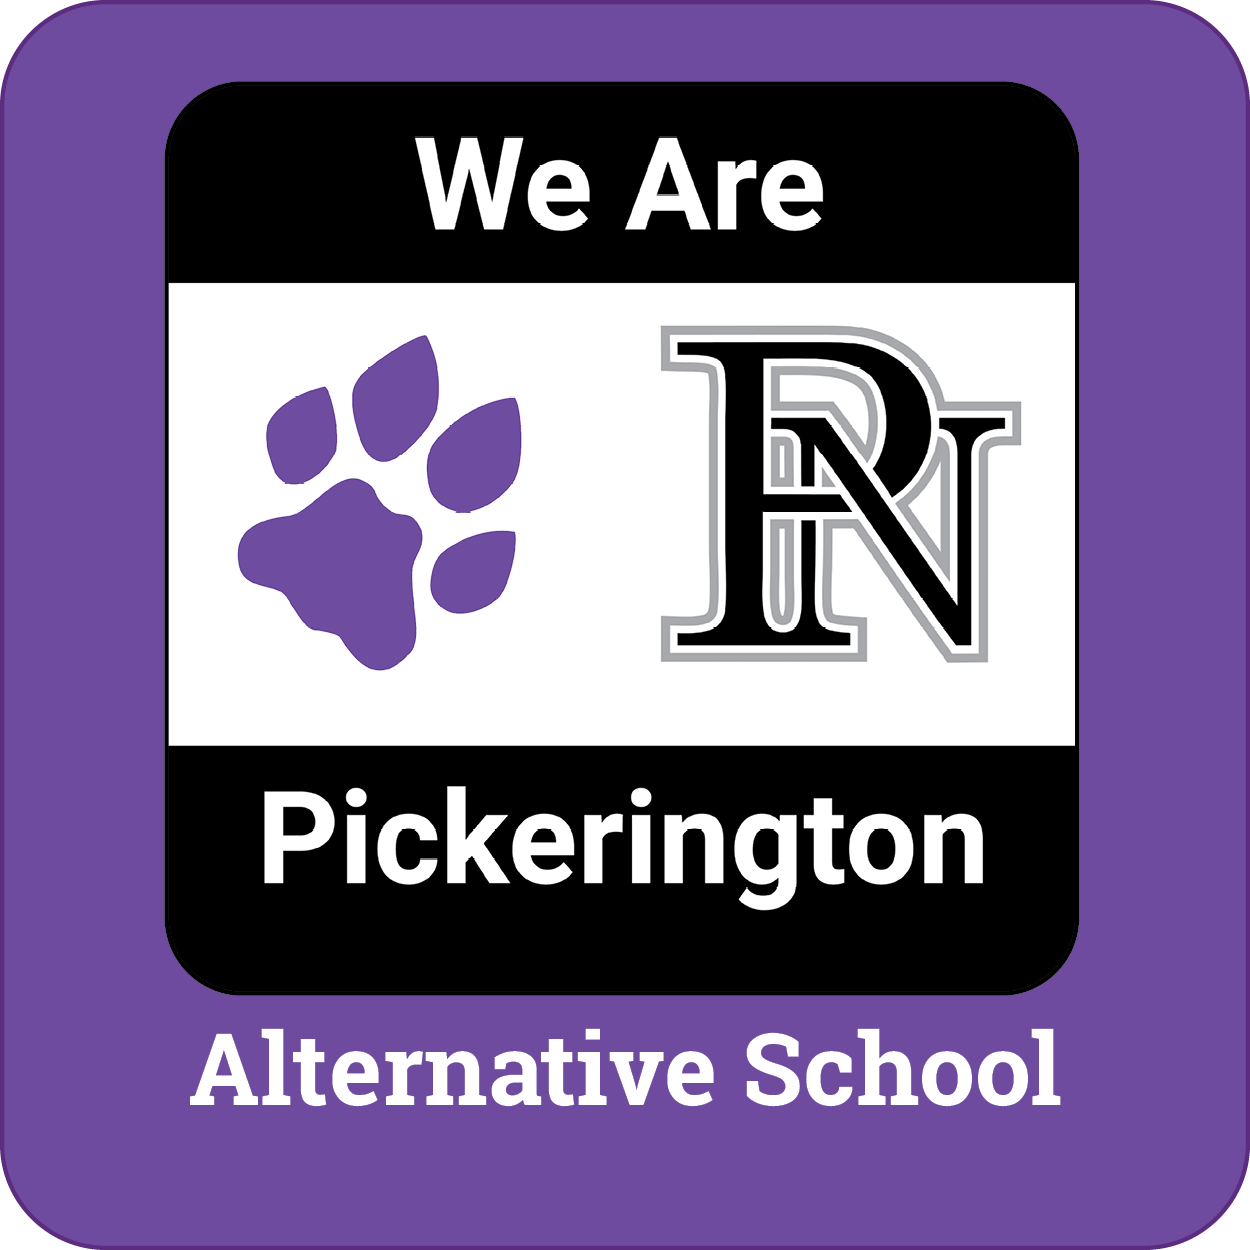 Link to Pickerington Alternative School's Information